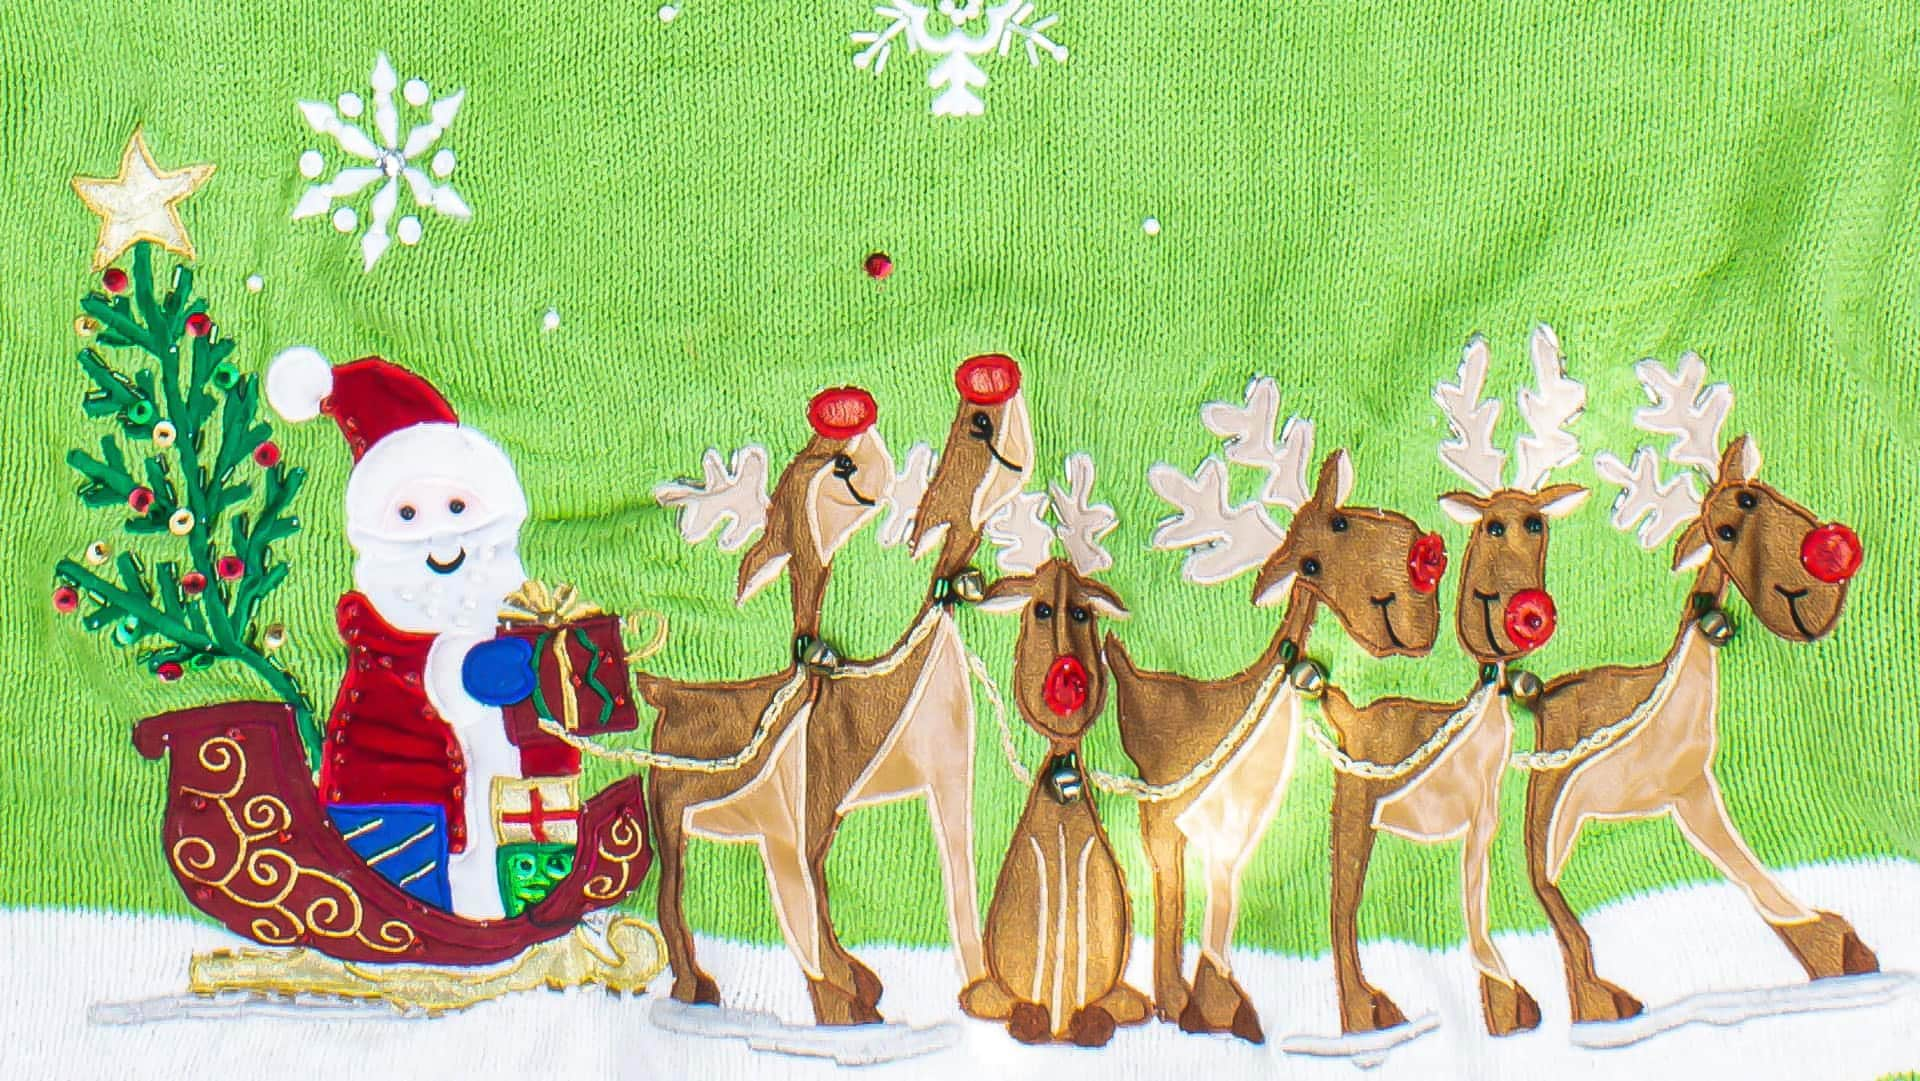 Ugly Christmas sweater featuring Santa Claus in his sleigh which is being led by six reindeer. The background is a bright green sweater.